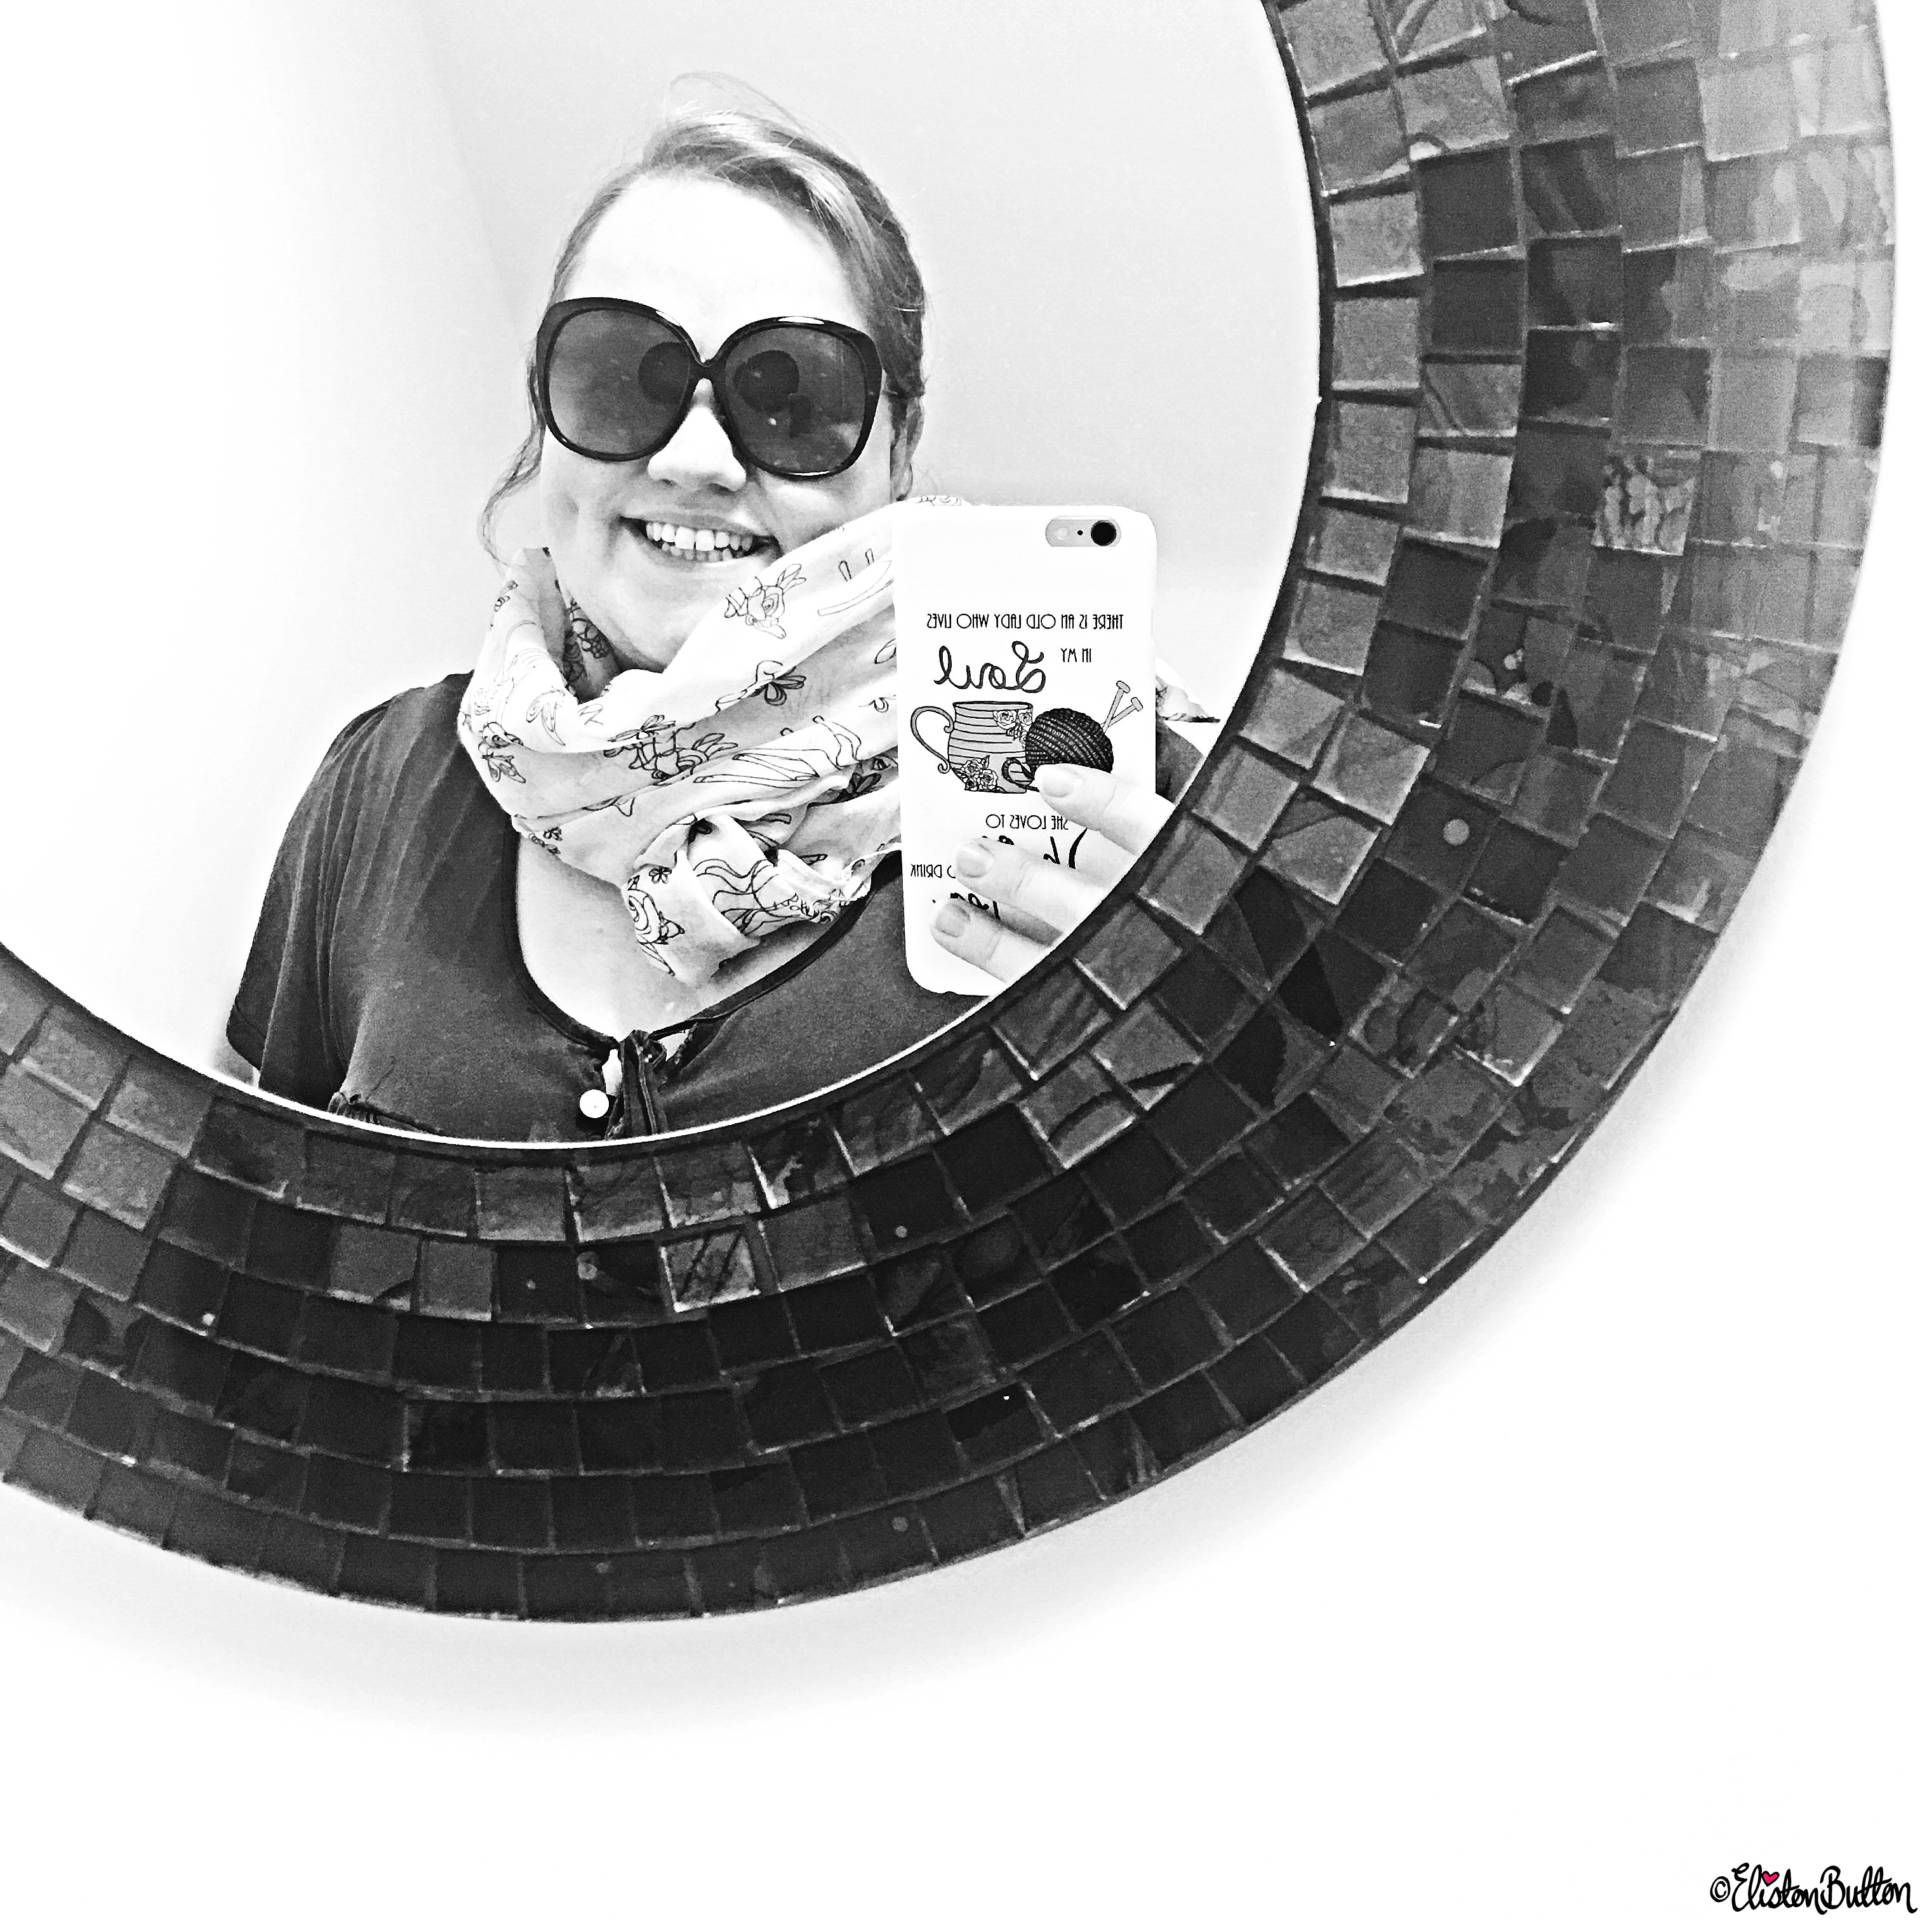 Day 13 - Mirror - Black and White Mosaic Mirror Selfie - Photo-a-Day – May 2016 at www.elistonbutton.com - Eliston Button - That Crafty Kid – Art, Design, Craft & Adventure.